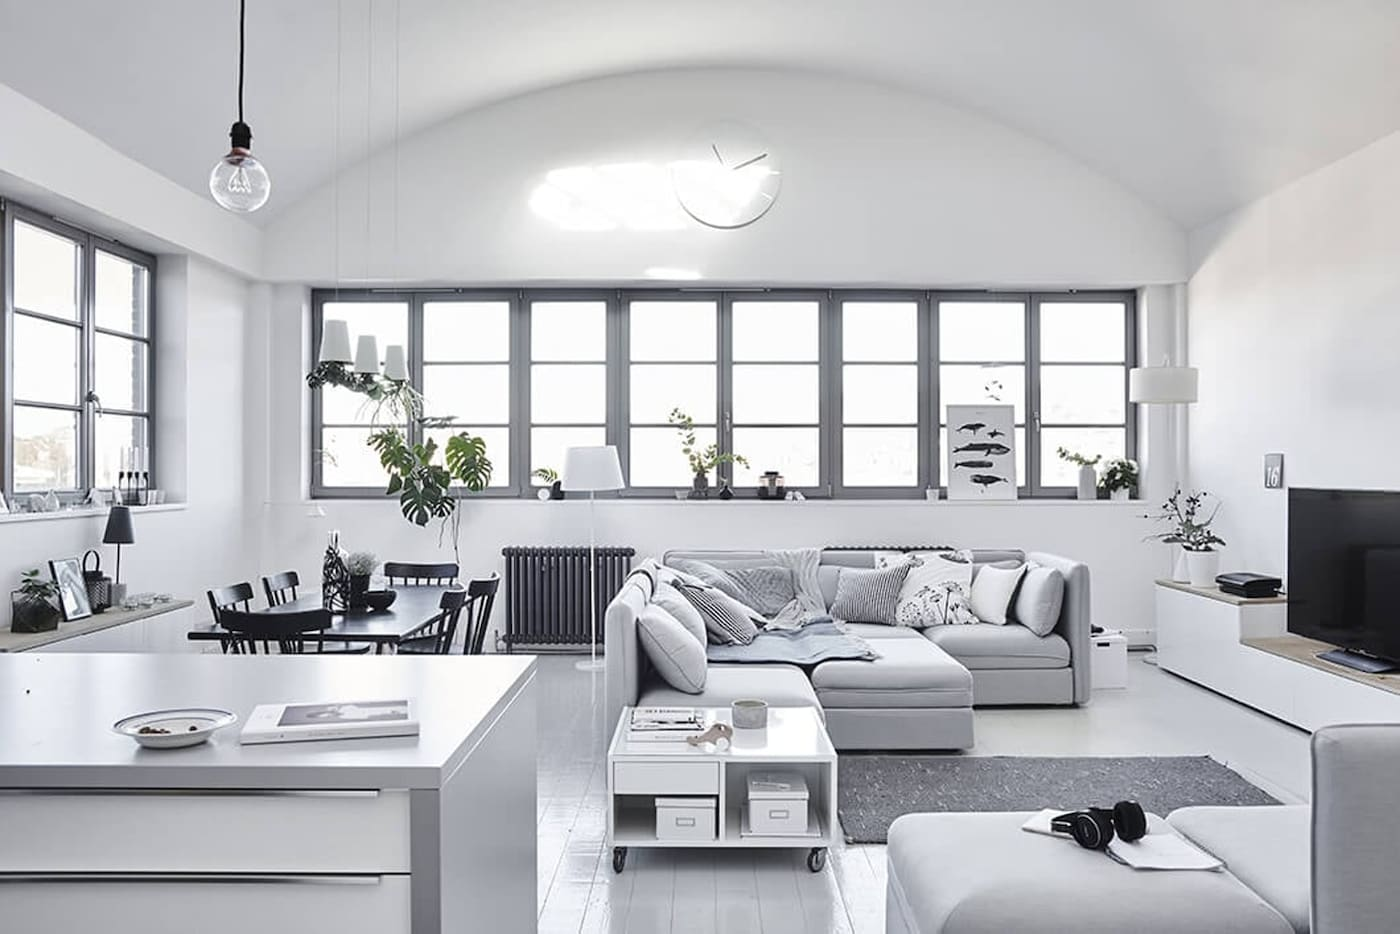 Scandinavian interior with seating area, dining table and kitchen in white and grey tones